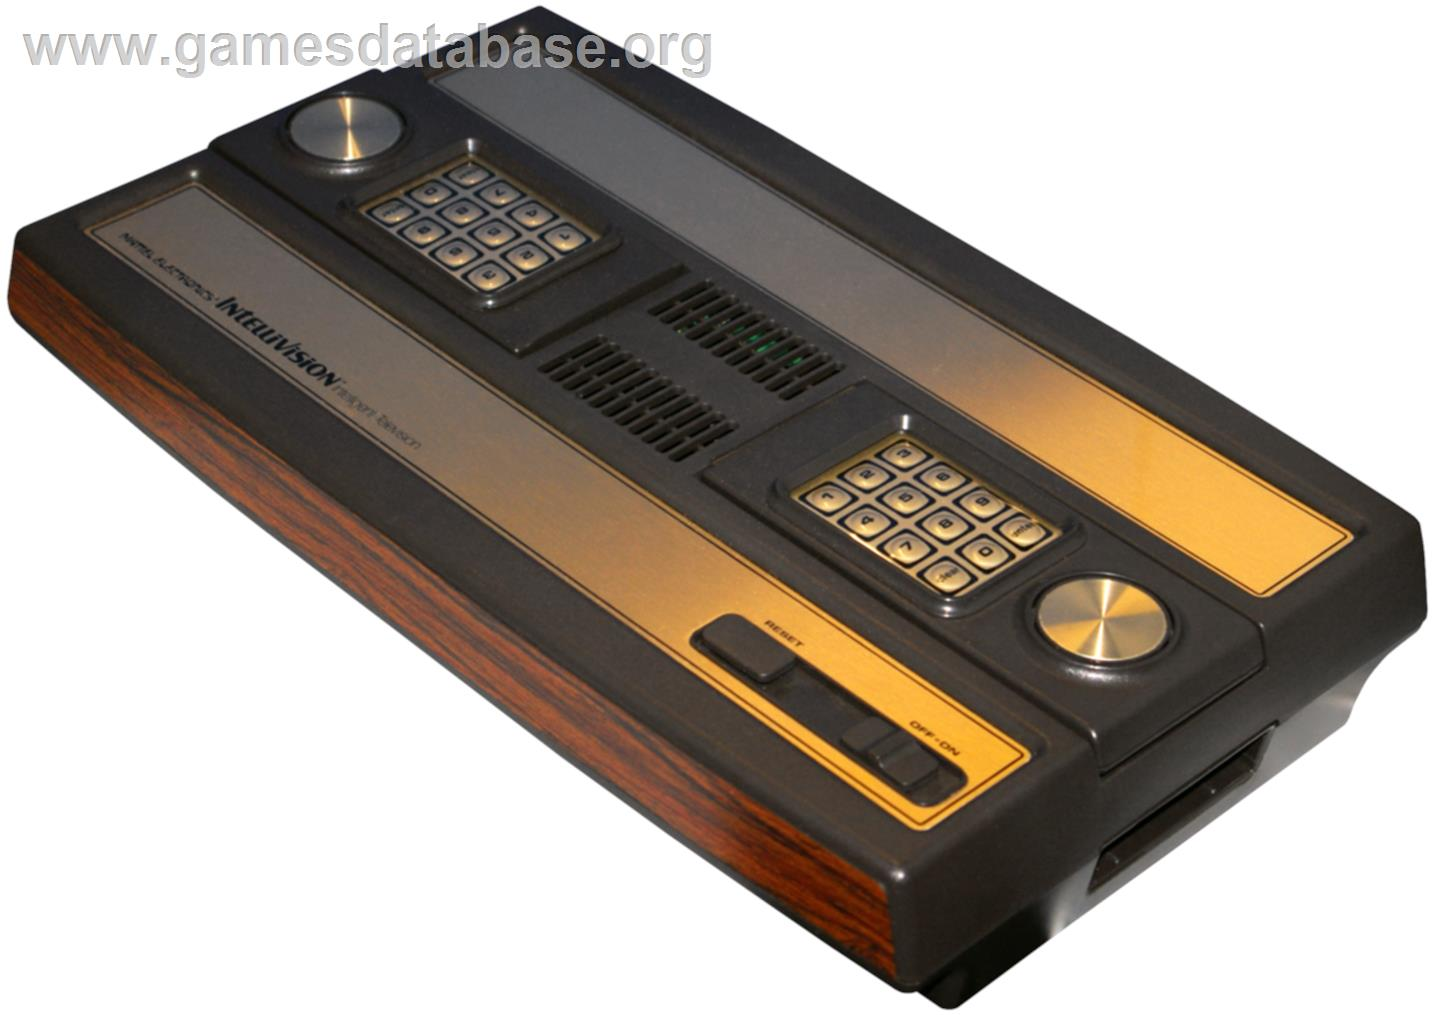 About - Mattel Intellivision - Games Database